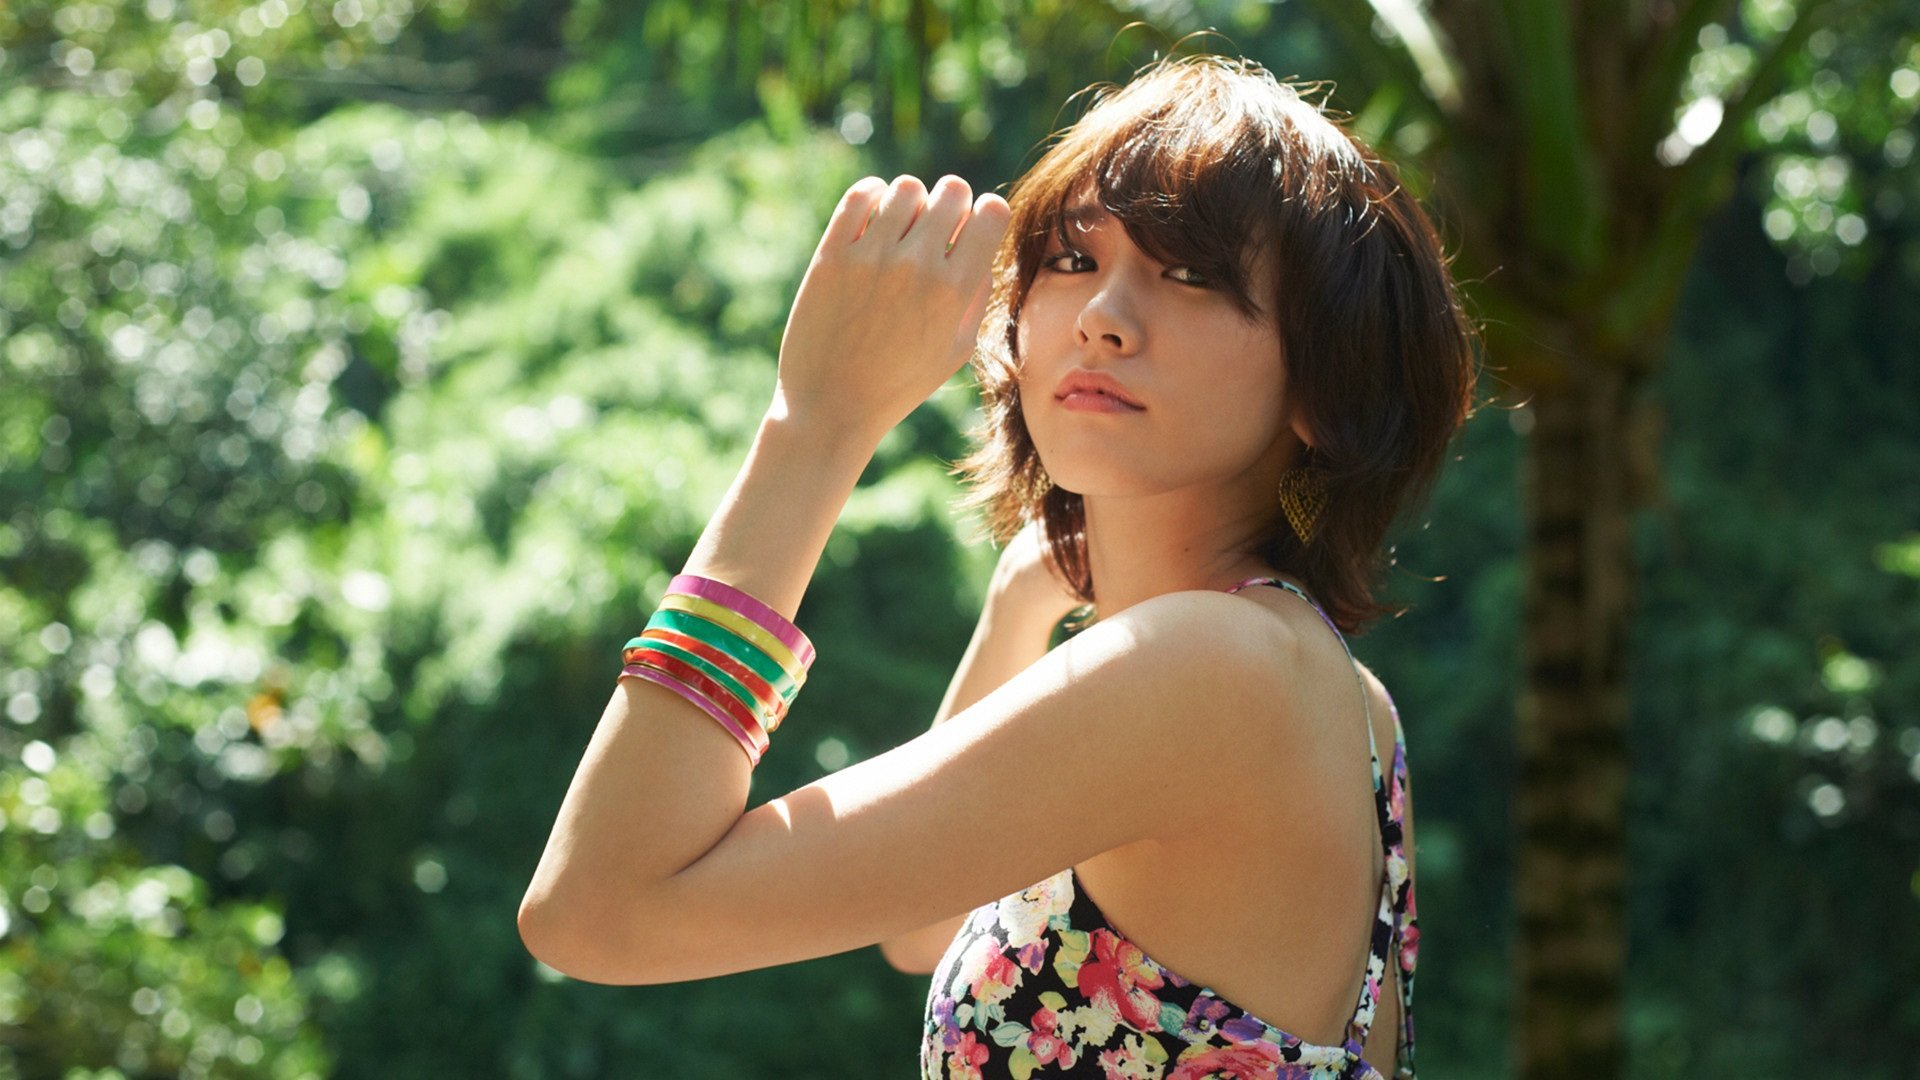 img 5a6db8bea708d.png?resize=1200,630 - 胸は小さいが、新垣結衣は魅力がたくさん。